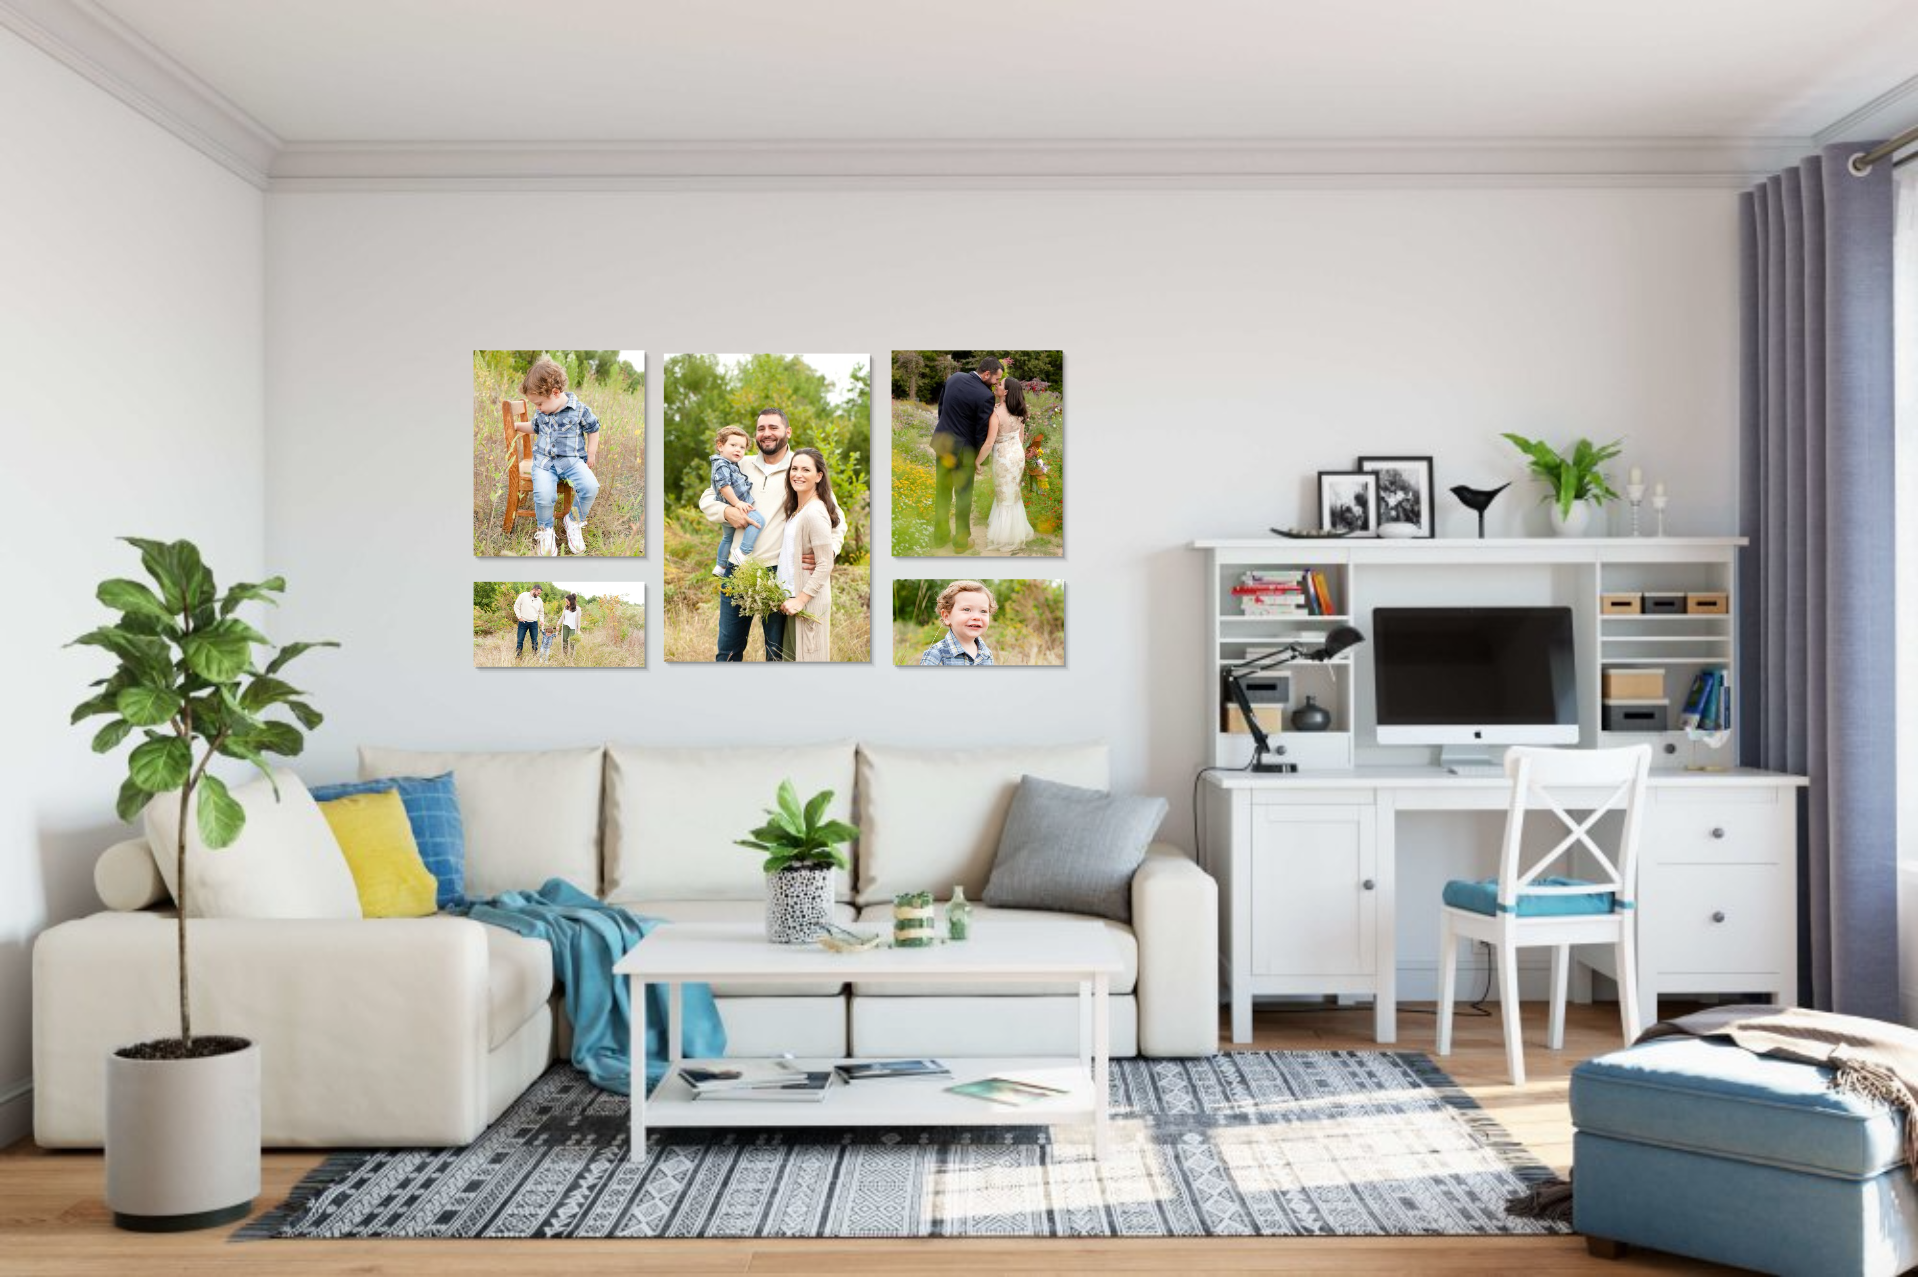 Photo Wall Gallery in living room above couch, Kaitlin Roten Photography